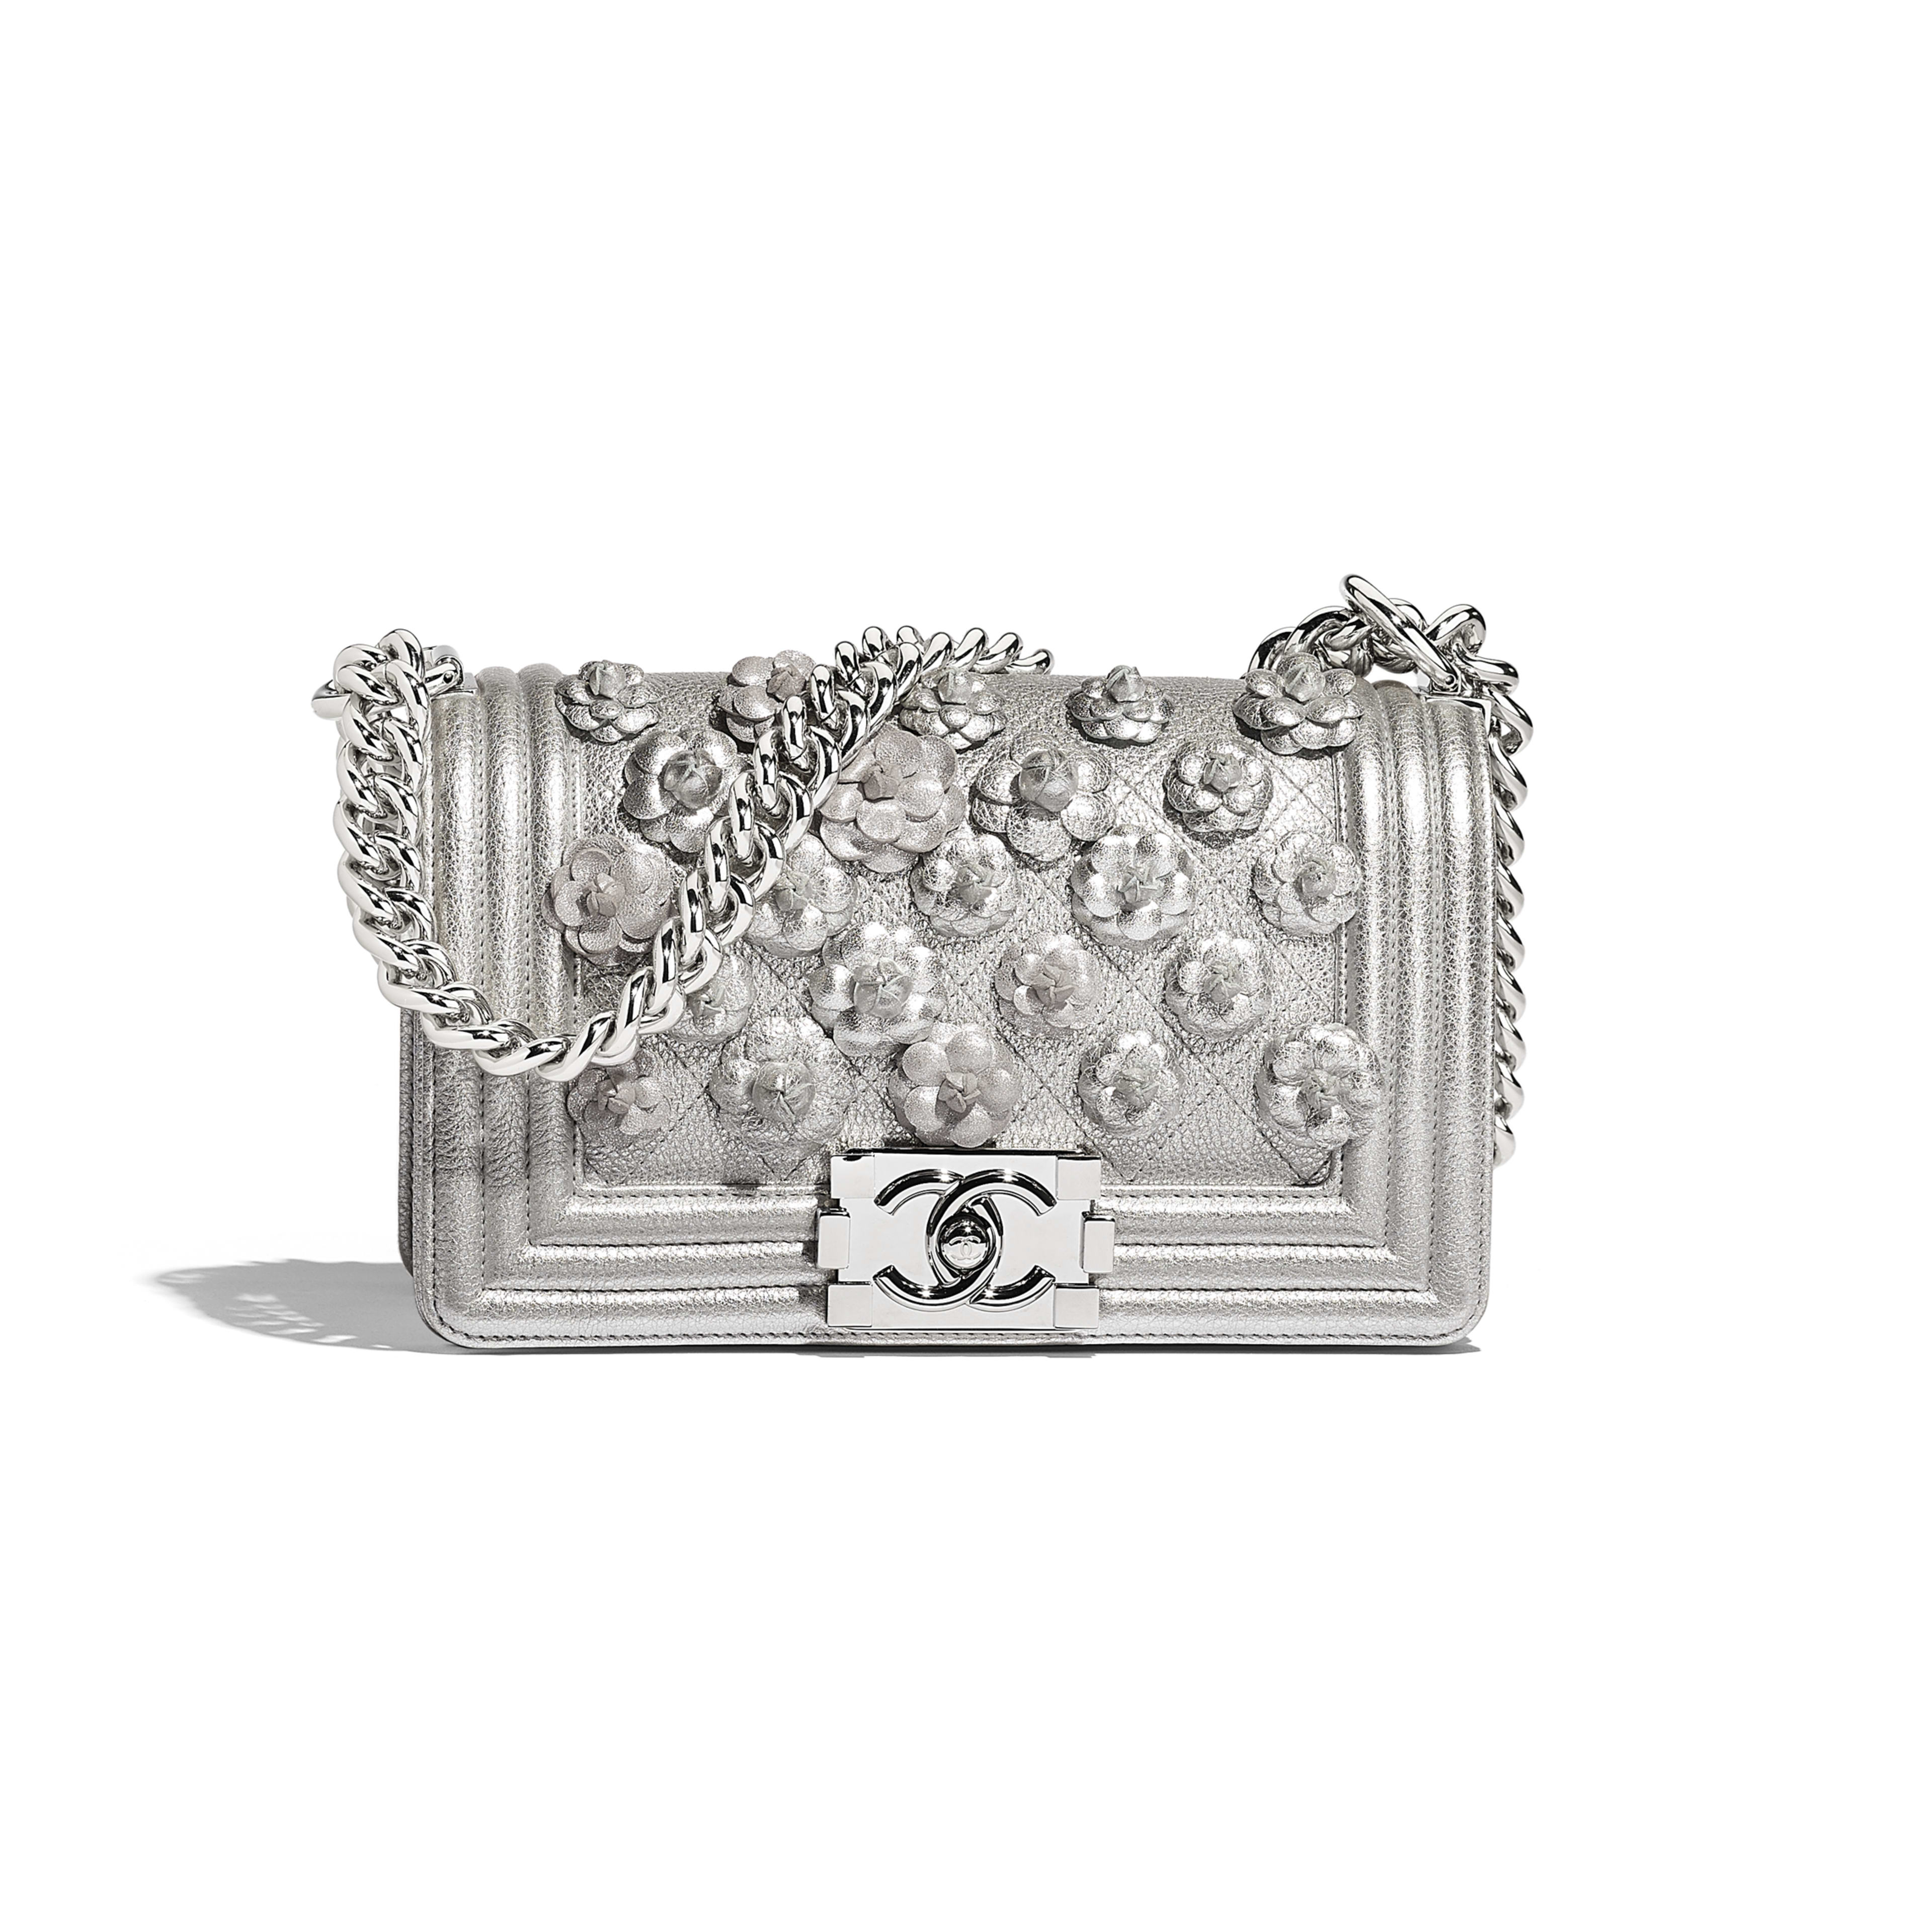 Small BOY CHANEL Handbag - Silver - Embroidered Metallic Grained Calfskin & Silver-Tone Metal - Default view - see full sized version